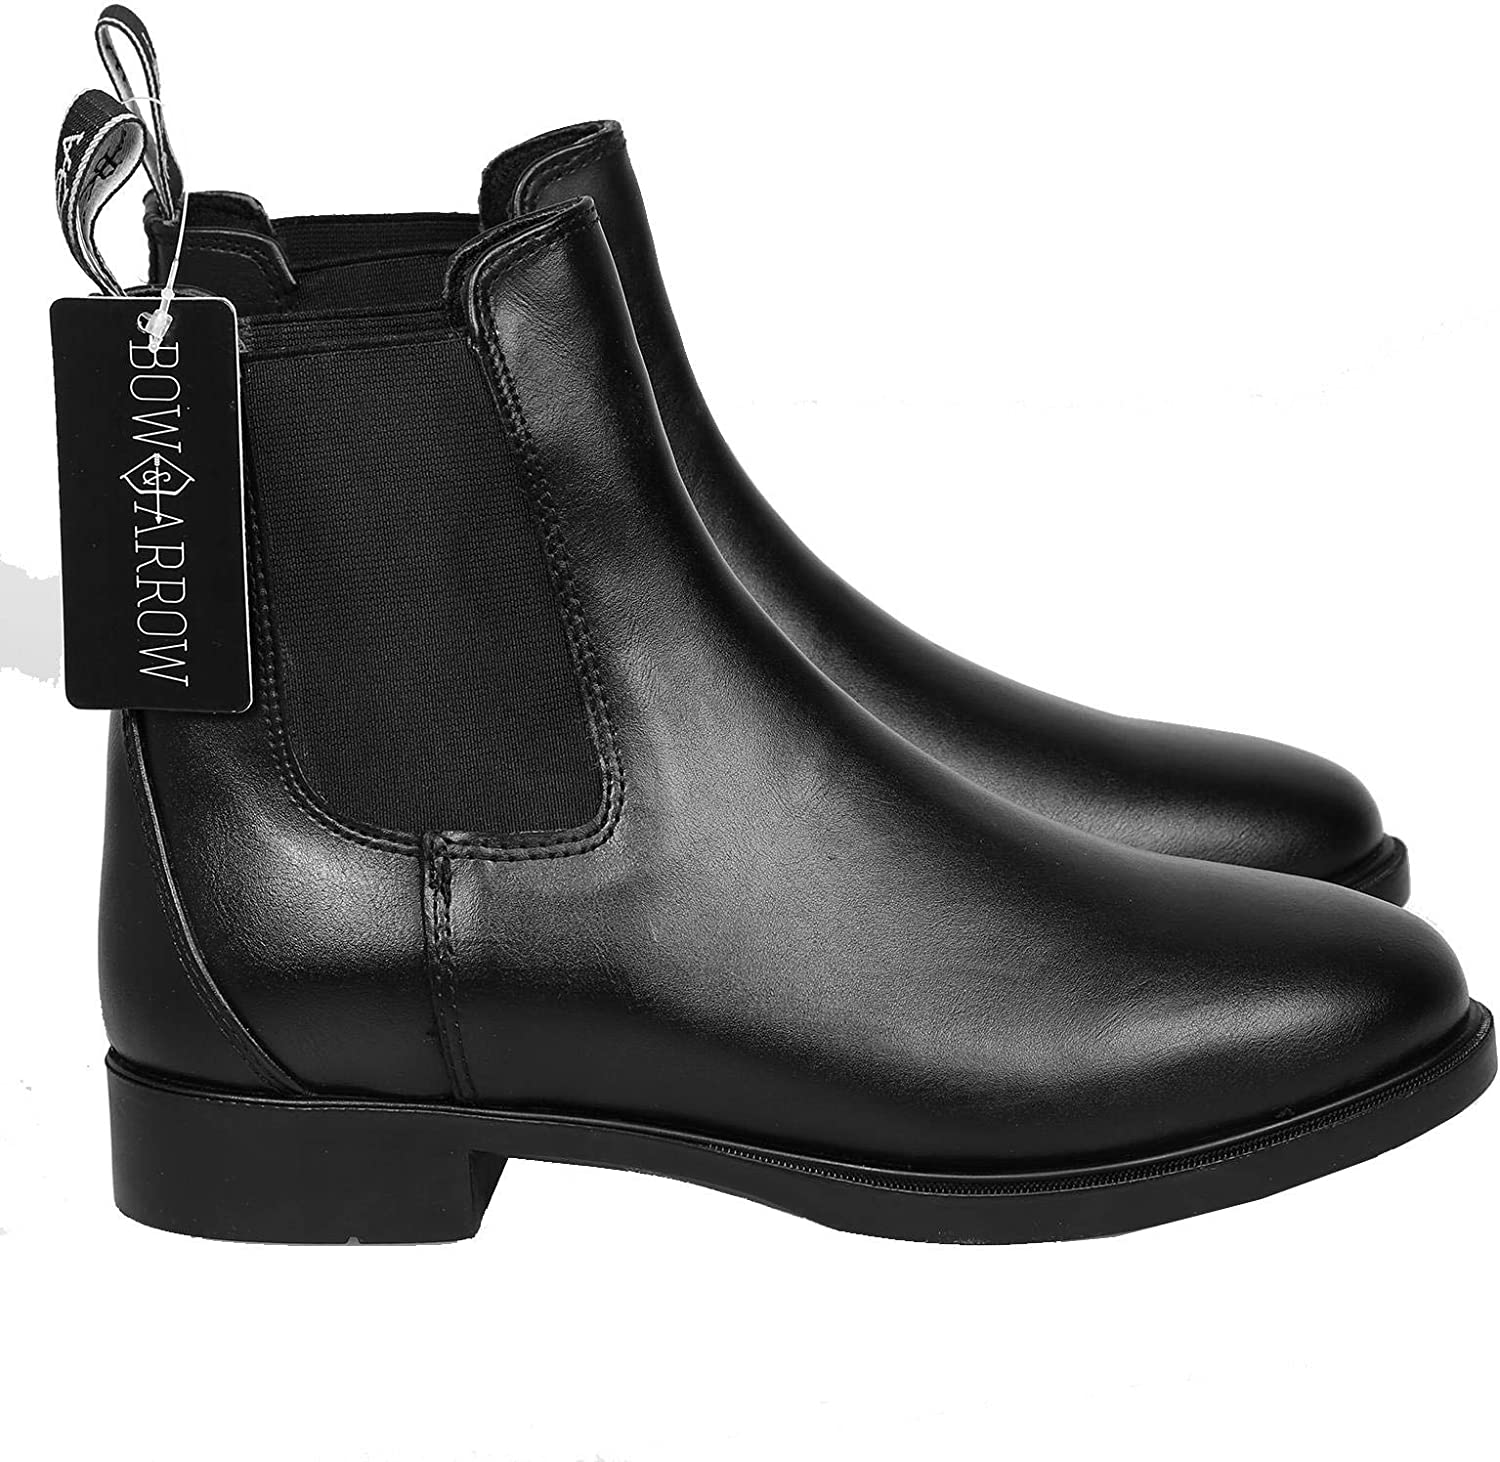 Bow & Arrow Riding Jodhpur Boots   Ladies Classic Equestrian Ankle Boots With Pull Tab Cap Toe Low Block Heel   Women Chelsea Girls Shoes Made With Leather Material